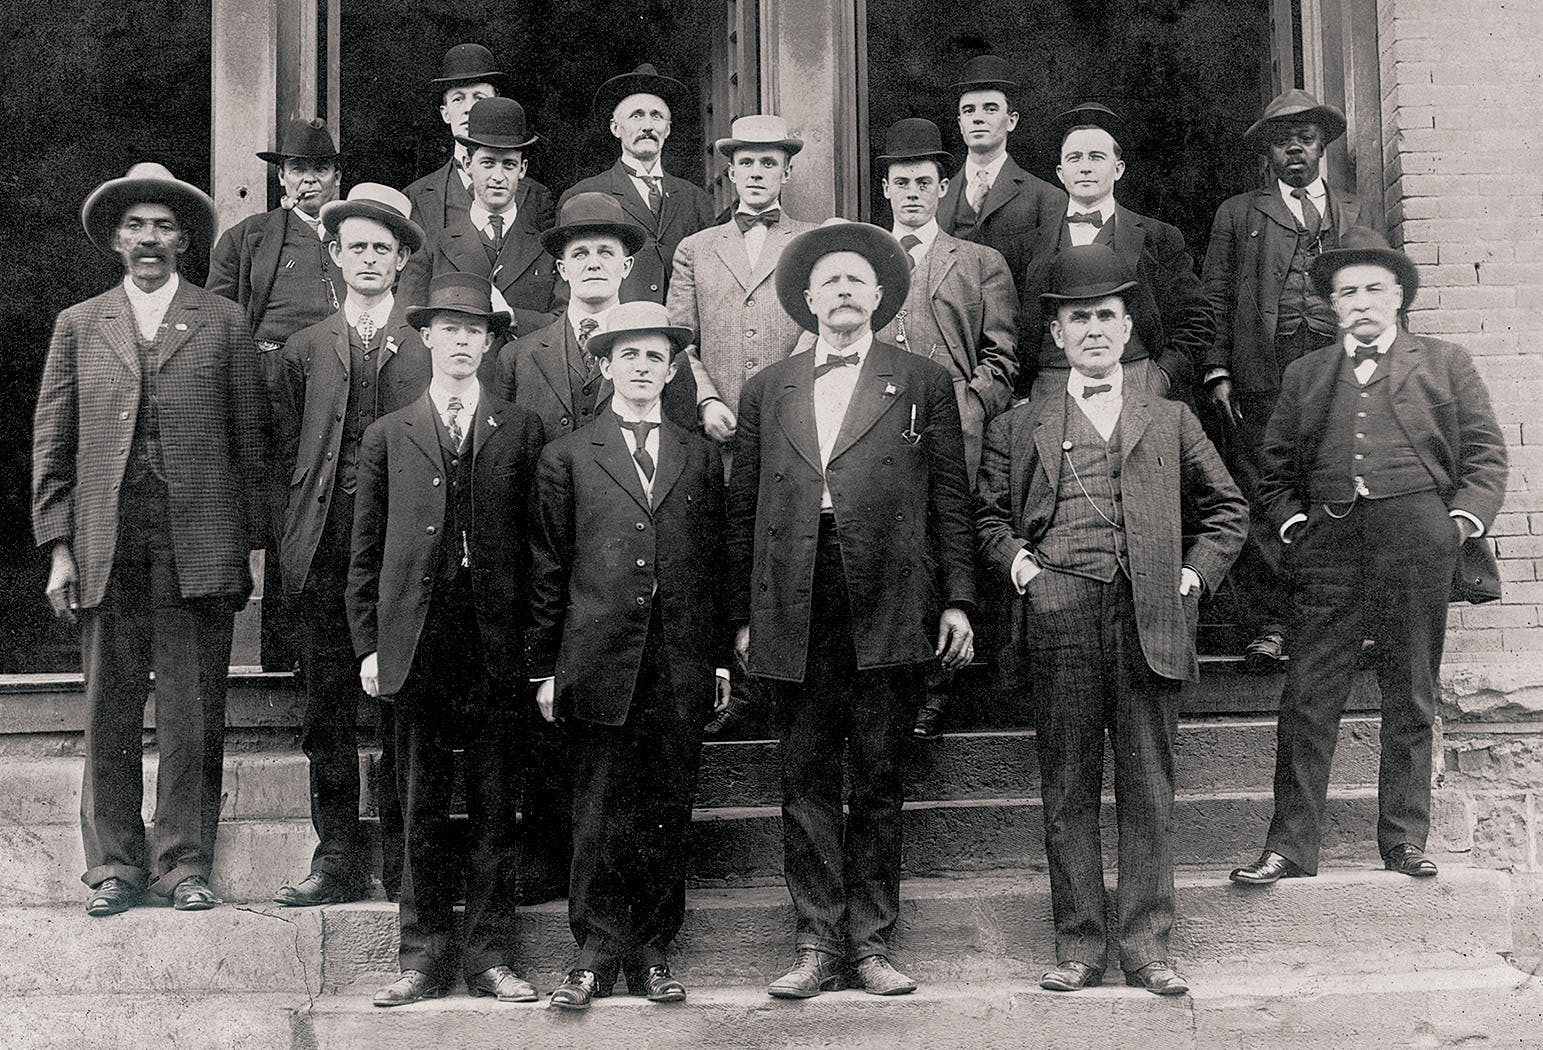 Reeves (far left), at age 69, posing with fellow members of the U.S. Marshals Service on the first day of Oklahoma statehood, November 16, 1907.